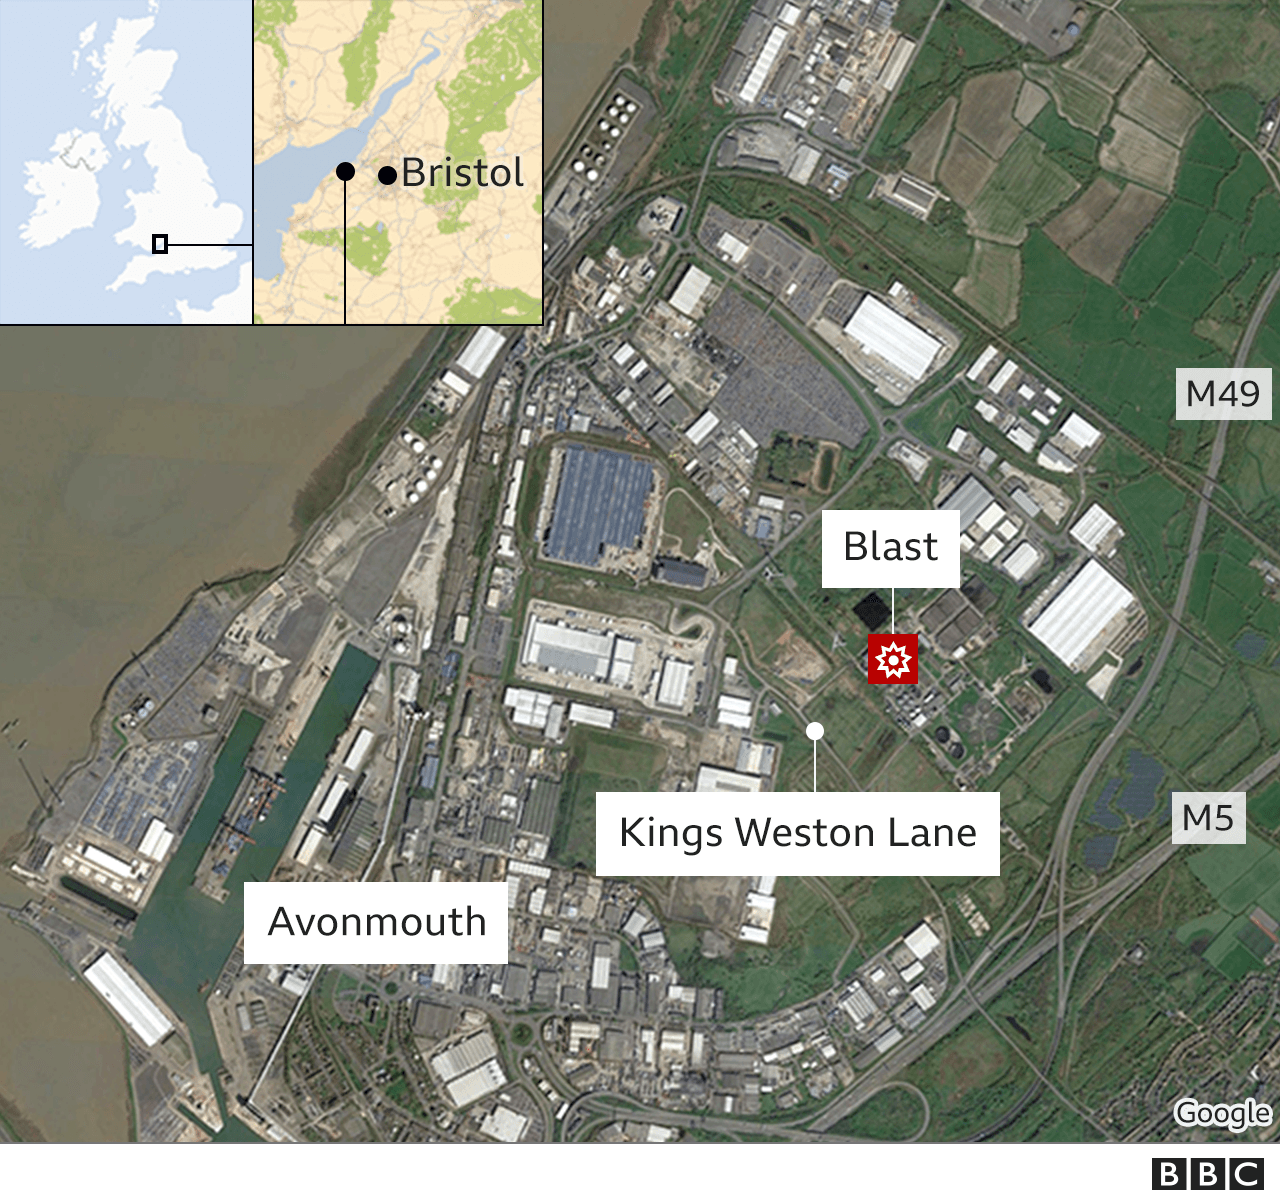 Avonmouth explosion: Four dead in Bristol water works blast thumbnail